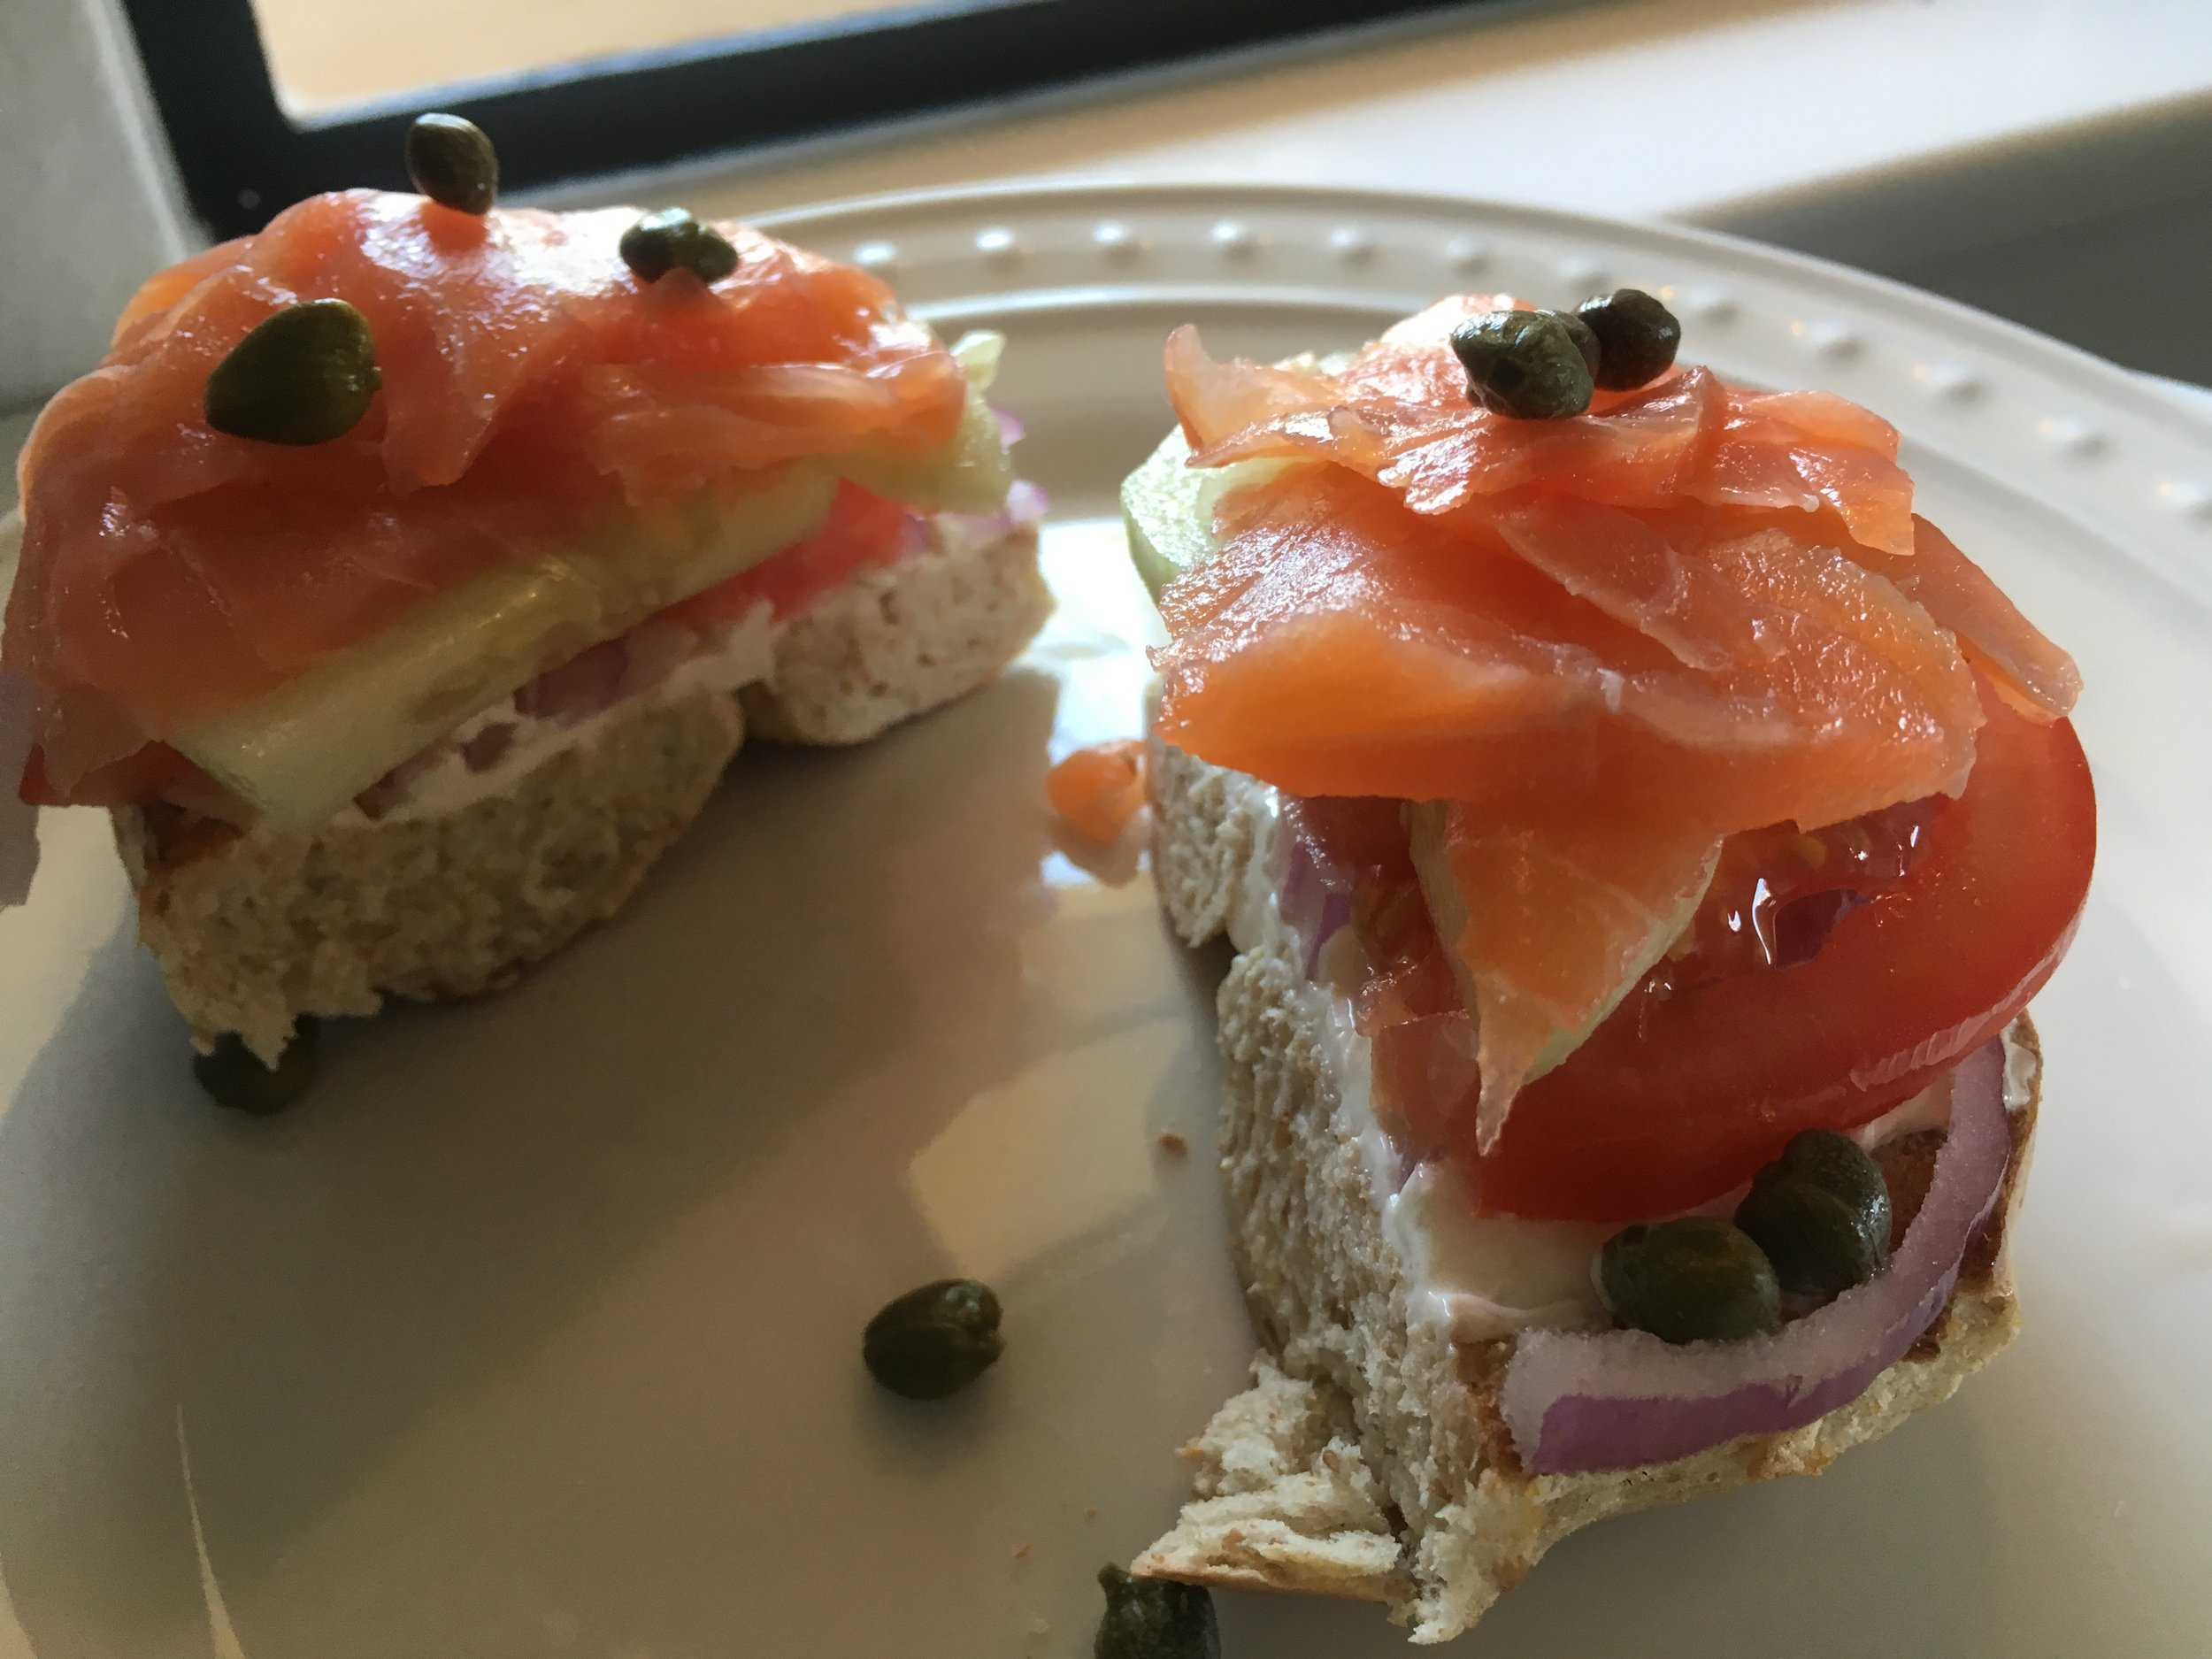 Homemade bagel and lox with capers, red onions, tomato, cucumber, and cream cheese.